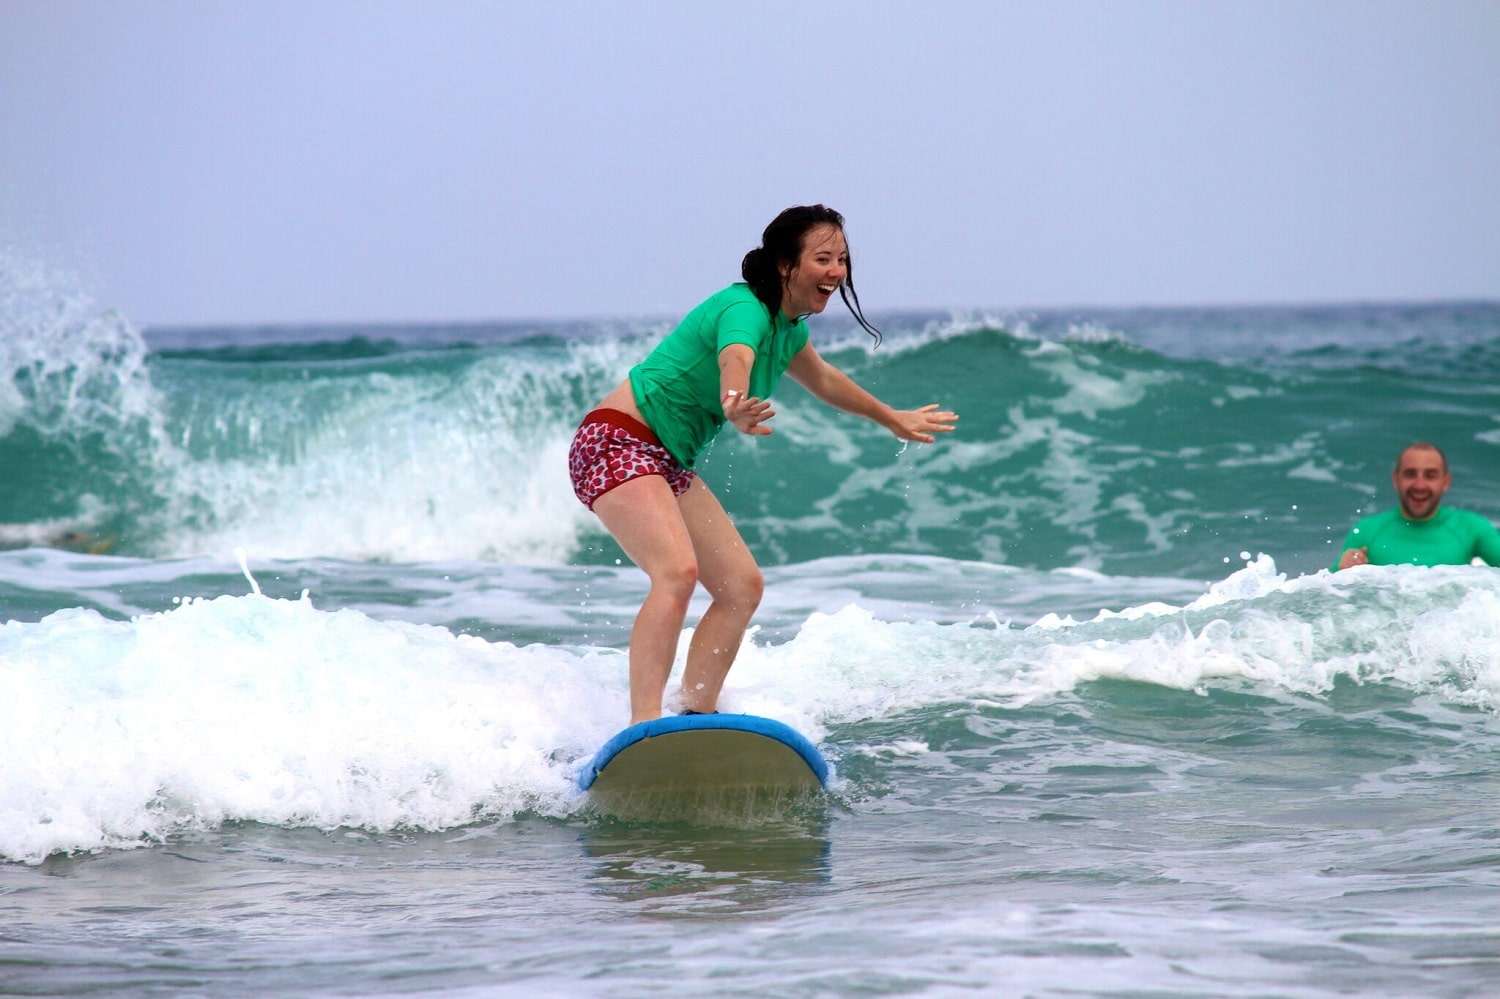 woman-learning-to-surf.jpeg